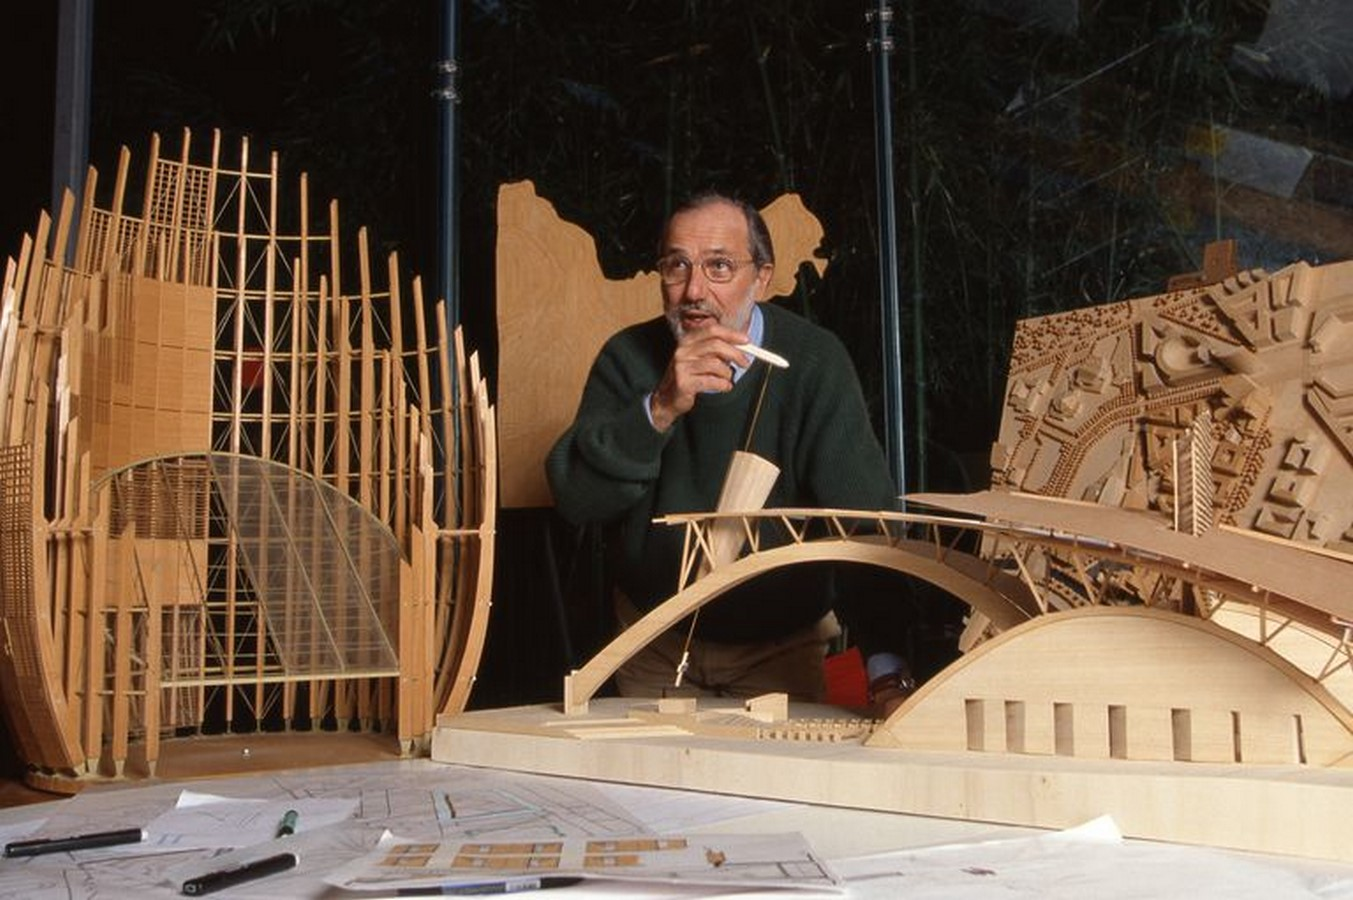 An Inside look at the Studios of Renzo Piano Sheet3